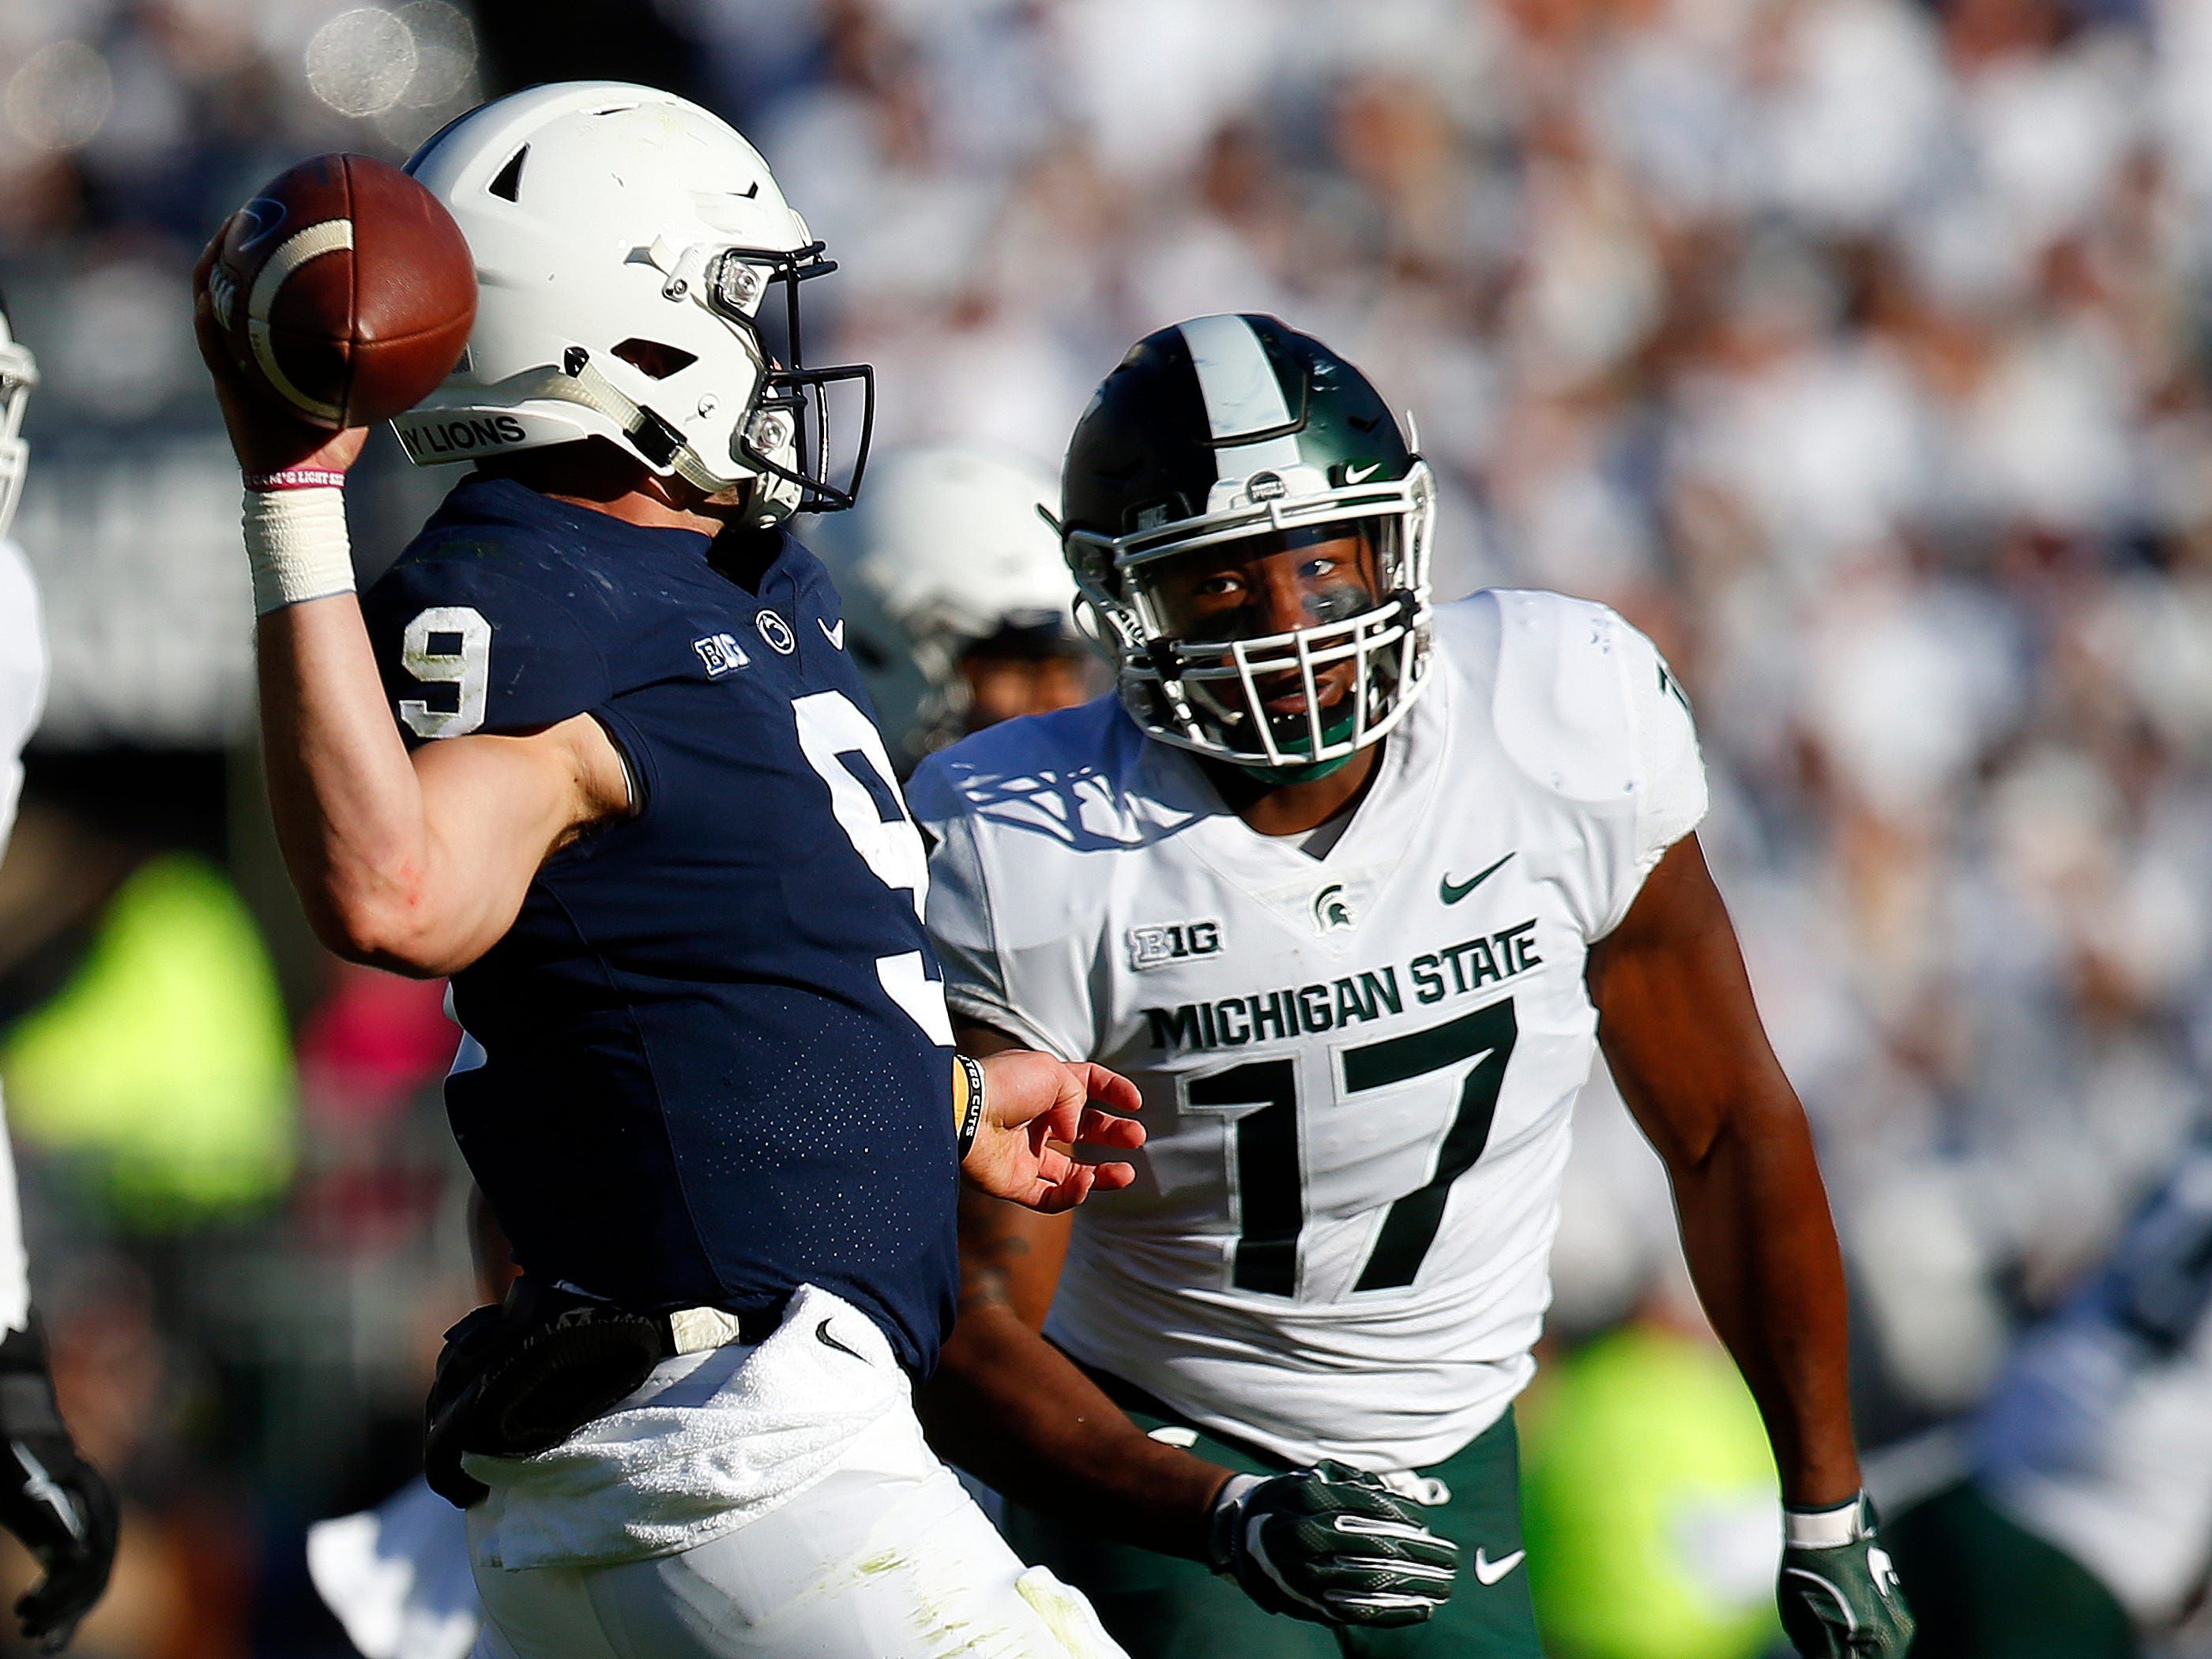 Trace McSorley #9 of the Penn State Nittany Lions is pressured by Tyriq Thompson #17 of the Michigan State Spartans on October 13, 2018 at Beaver Stadium in State College, Pennsylvania.